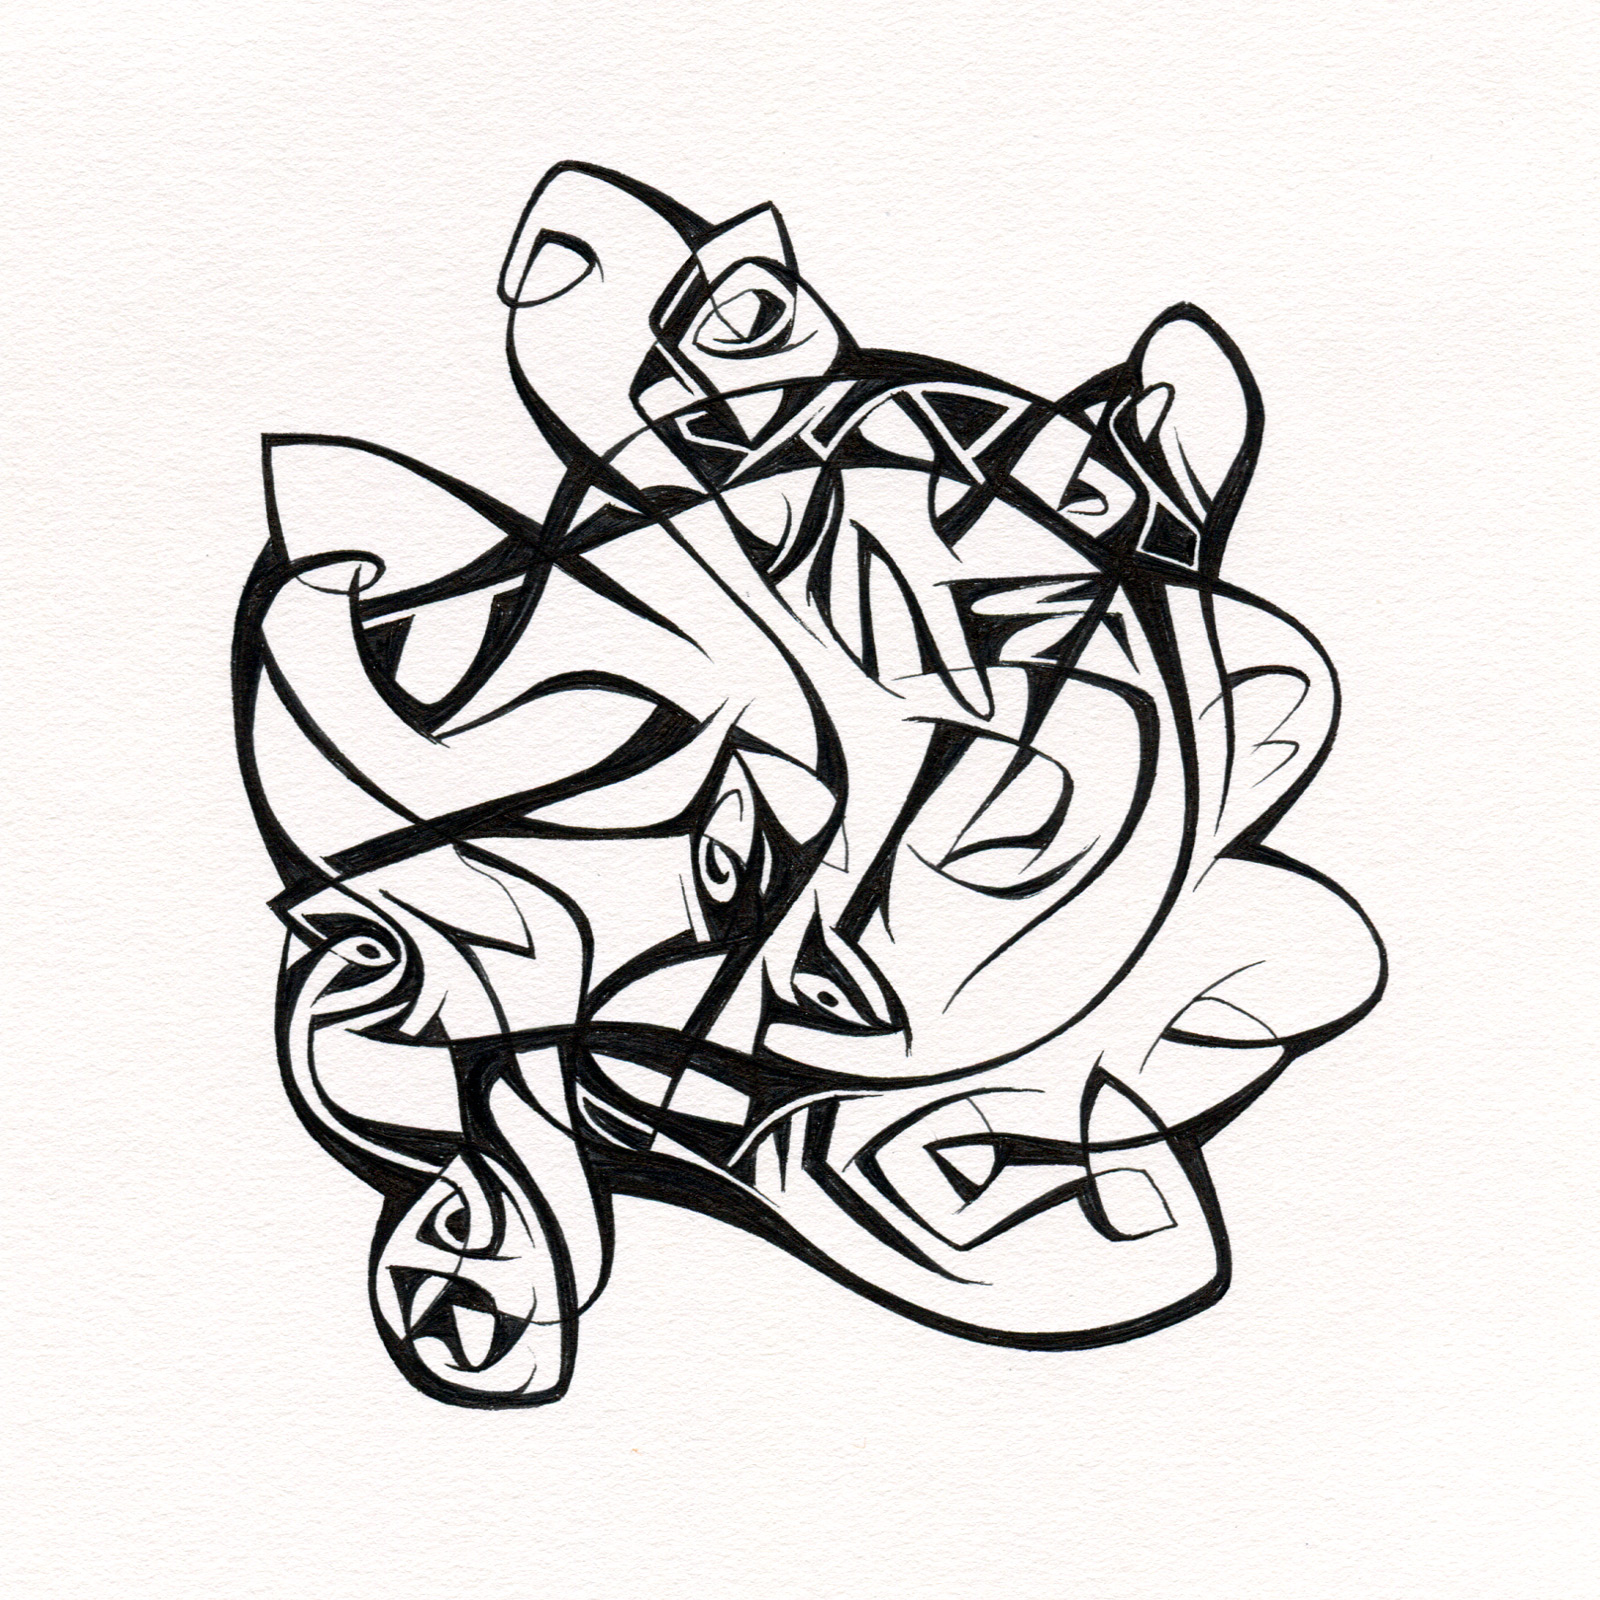 "Untitled Ink Drawing #99 , 2015. Ink on paper. Approximately 5"" x 5""."